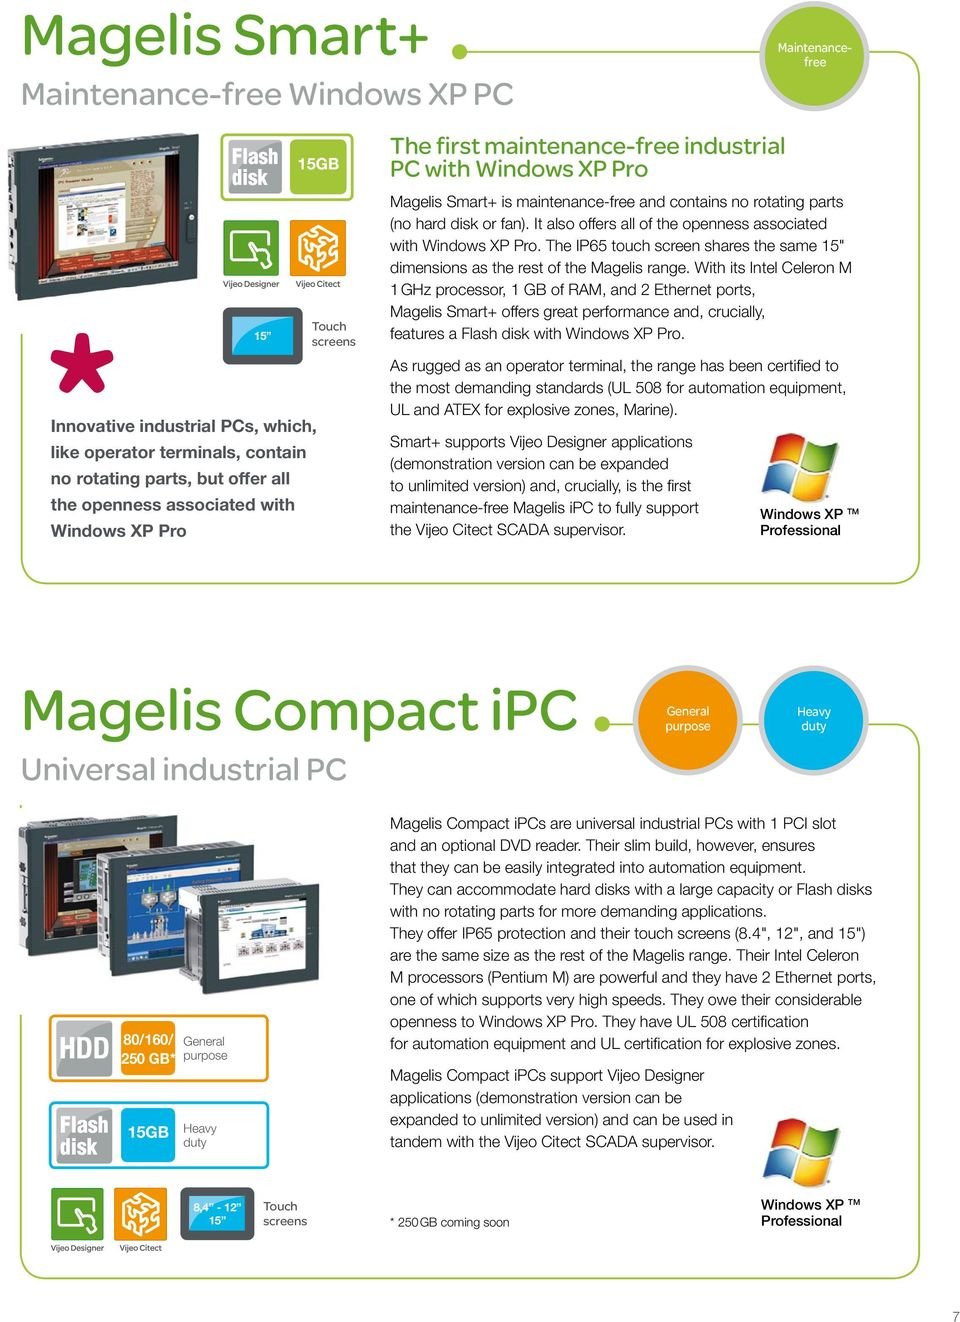 "It also offers all of the openness associated with Windows XP Pro. The IP65 touch screen shares the same 15"" dimensions as the rest of the Magelis range."